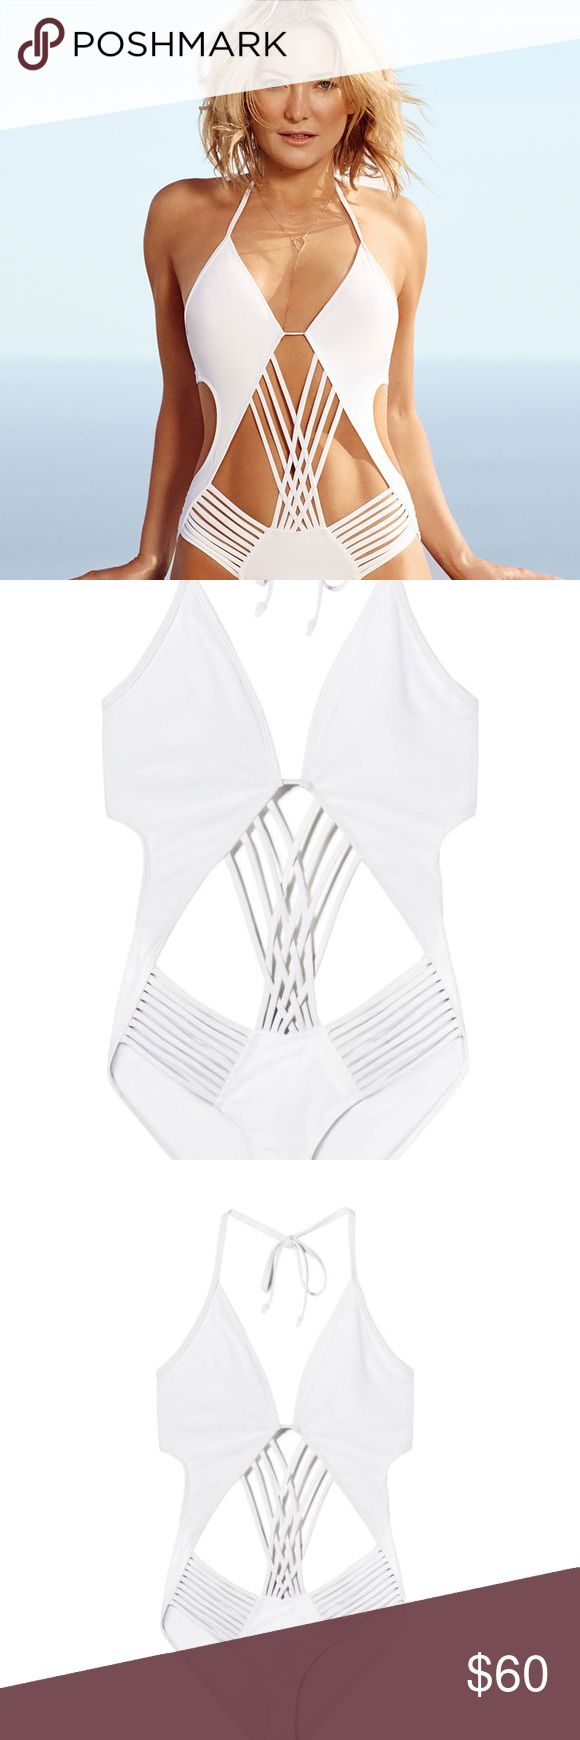 Fabletics White One Piece Bathing Suit Sexy brand new suit with tags! Too small for me unfortunately so have to sell and get next size up. Fabletics Swim One Pieces